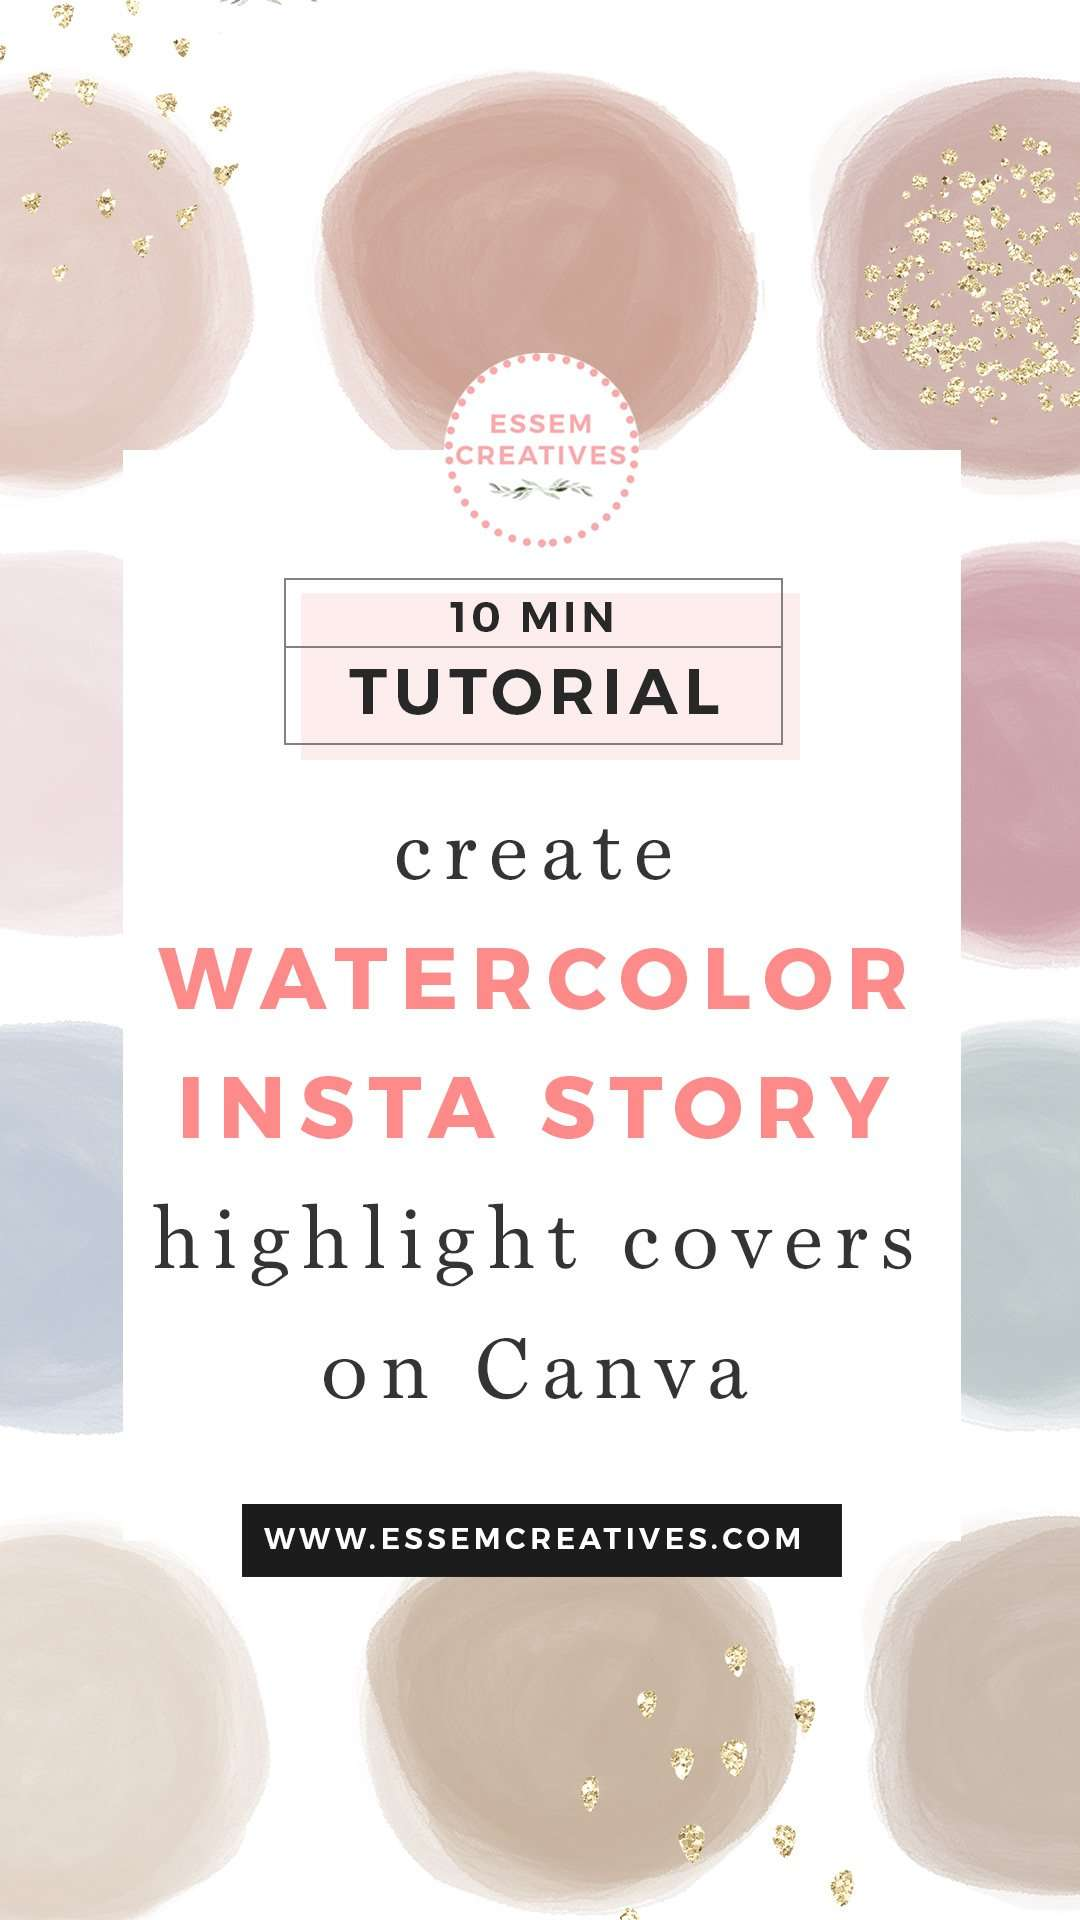 How To Create Watercolor Instagram Story Highlight Cover Icons On Canva On Mobile Essem Creatives Watercolor Clipart Business Branding